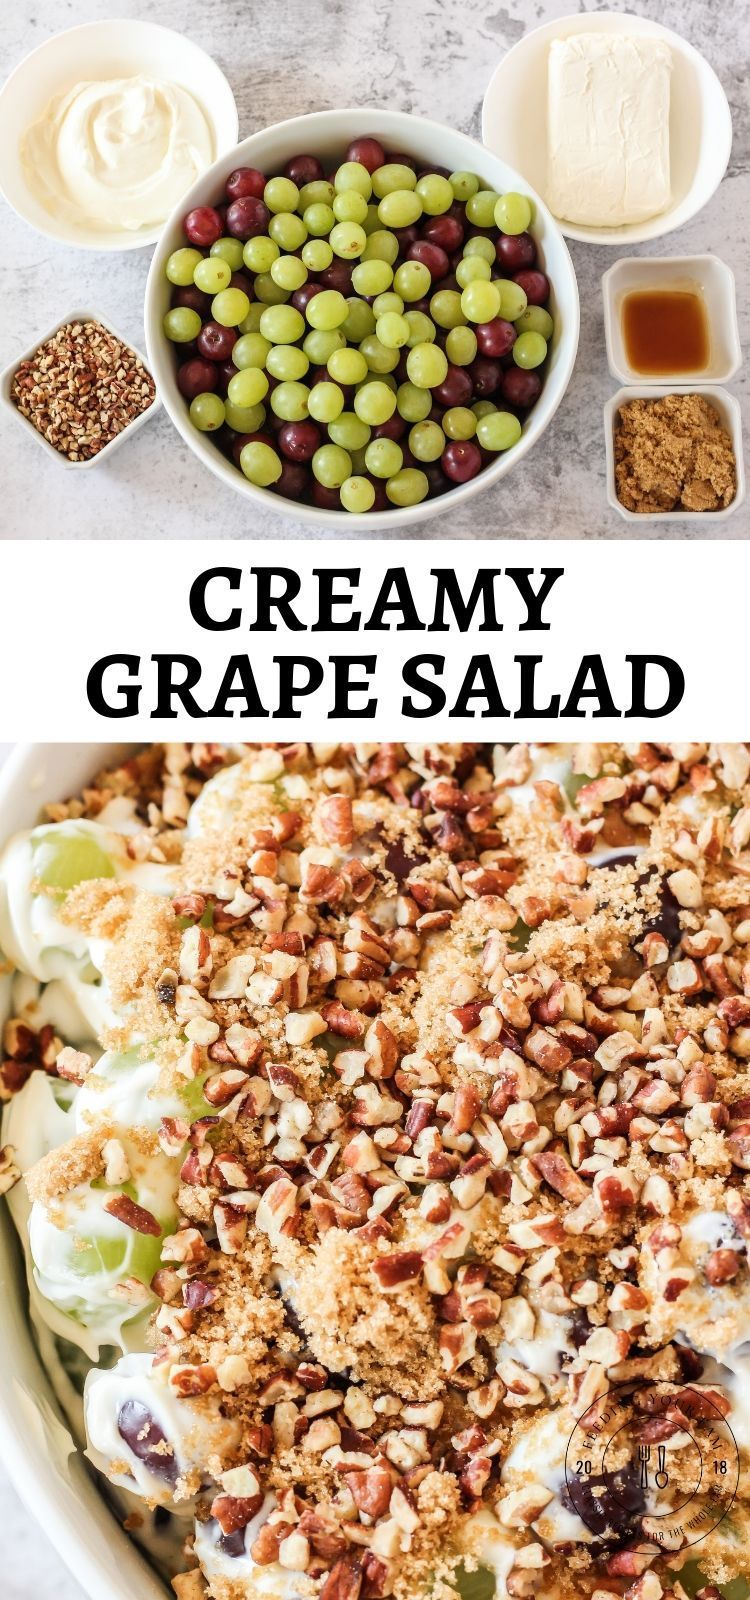 This Grape Salad Recipe is a simple and quick side dish that is loaded with red and green grapes in a creamy dressing covered in brown sugar and pecans. Perfect for potlucks and family get togethers! #grapesalad #sidedish #potluck #dessertsalad